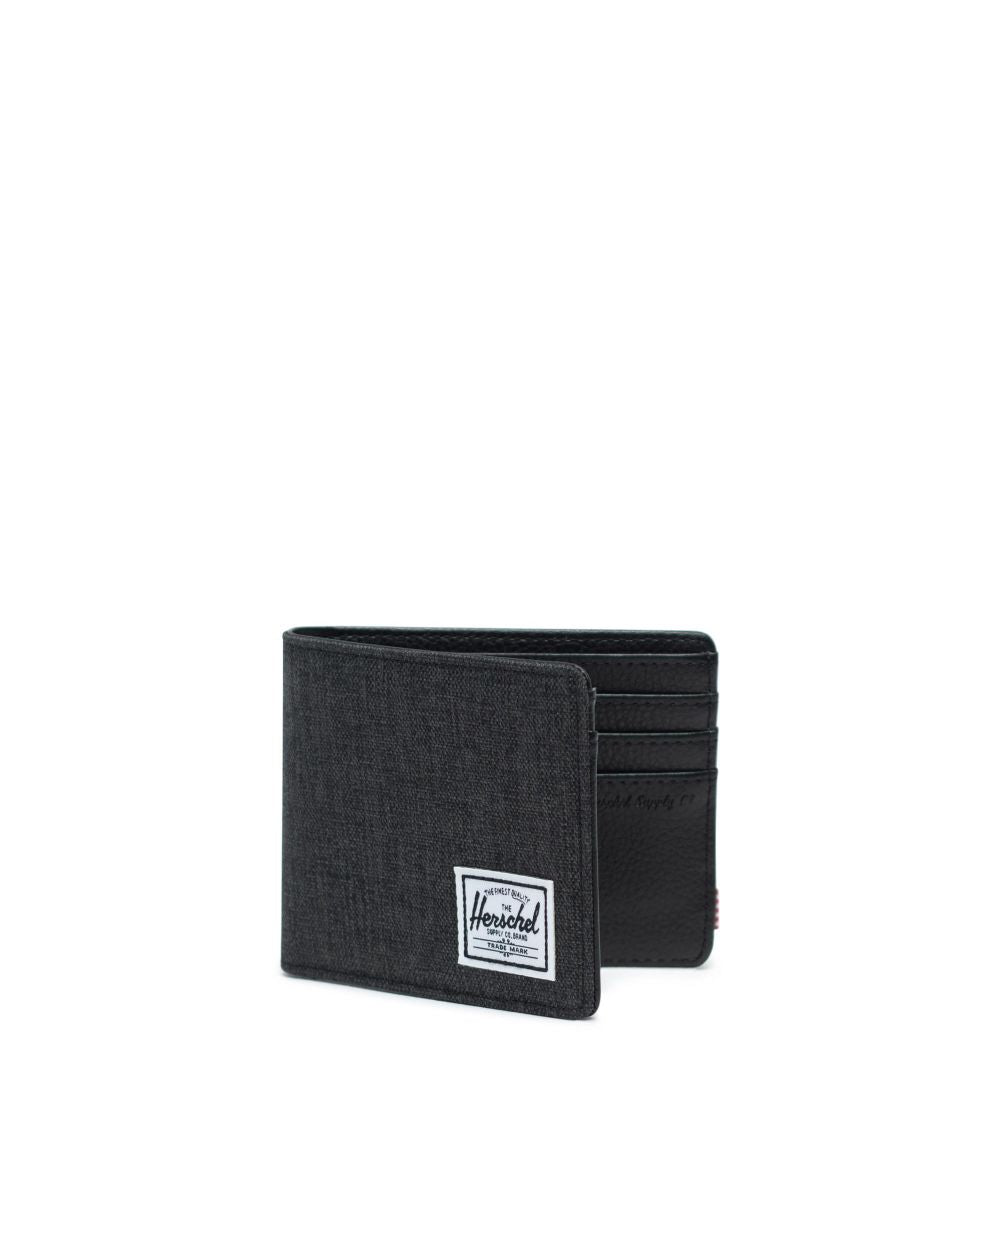 HERSCHEL WALLETS Default HANK WALLET BLACK CROSSHATCH/BLACK